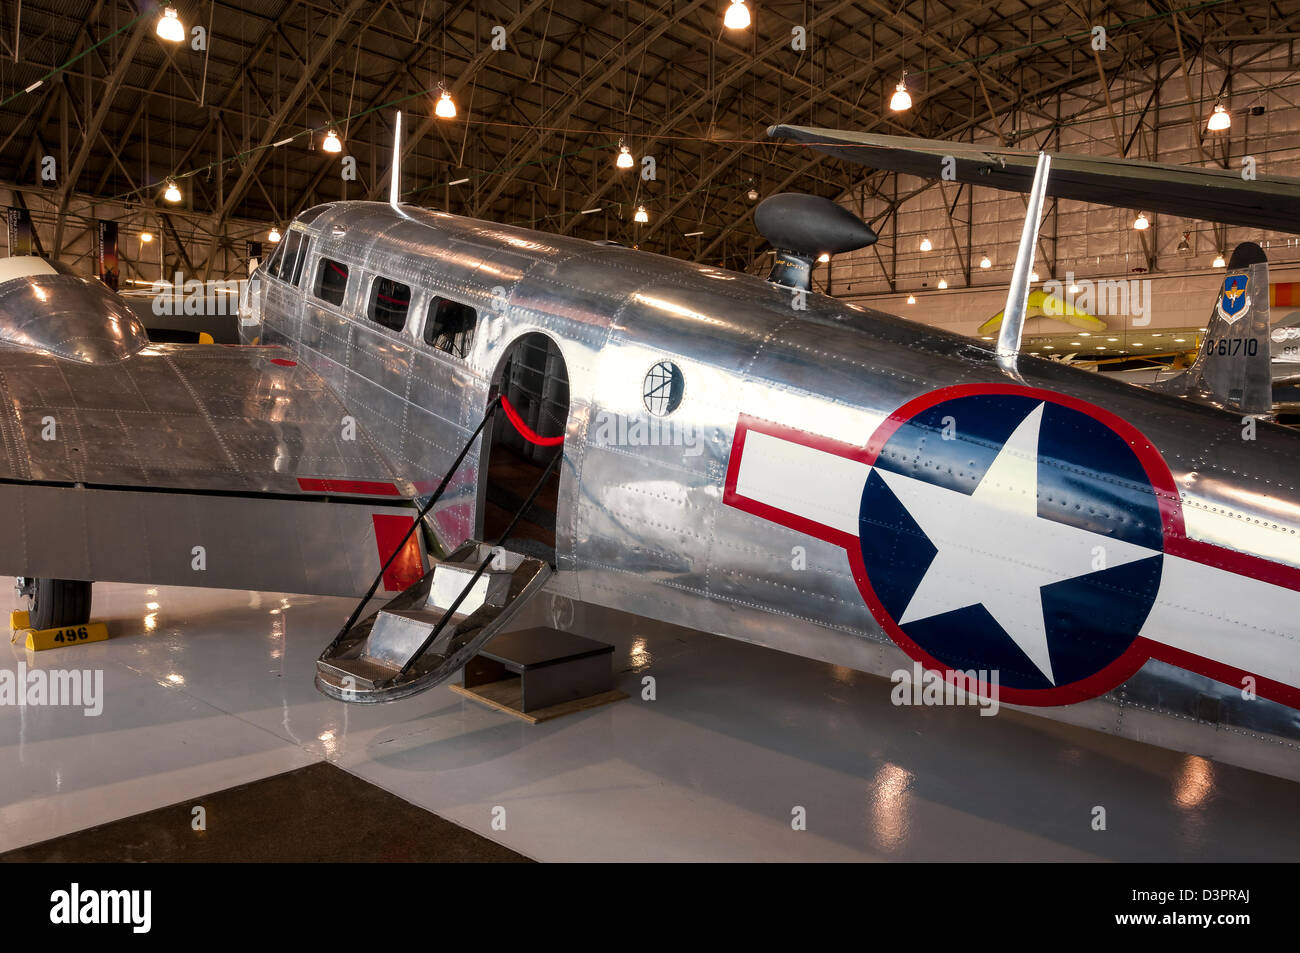 Beechcraft C-45 Expediter, Wings over the Rockies Air and Space Museum, Denver, Colorado. - Stock Image